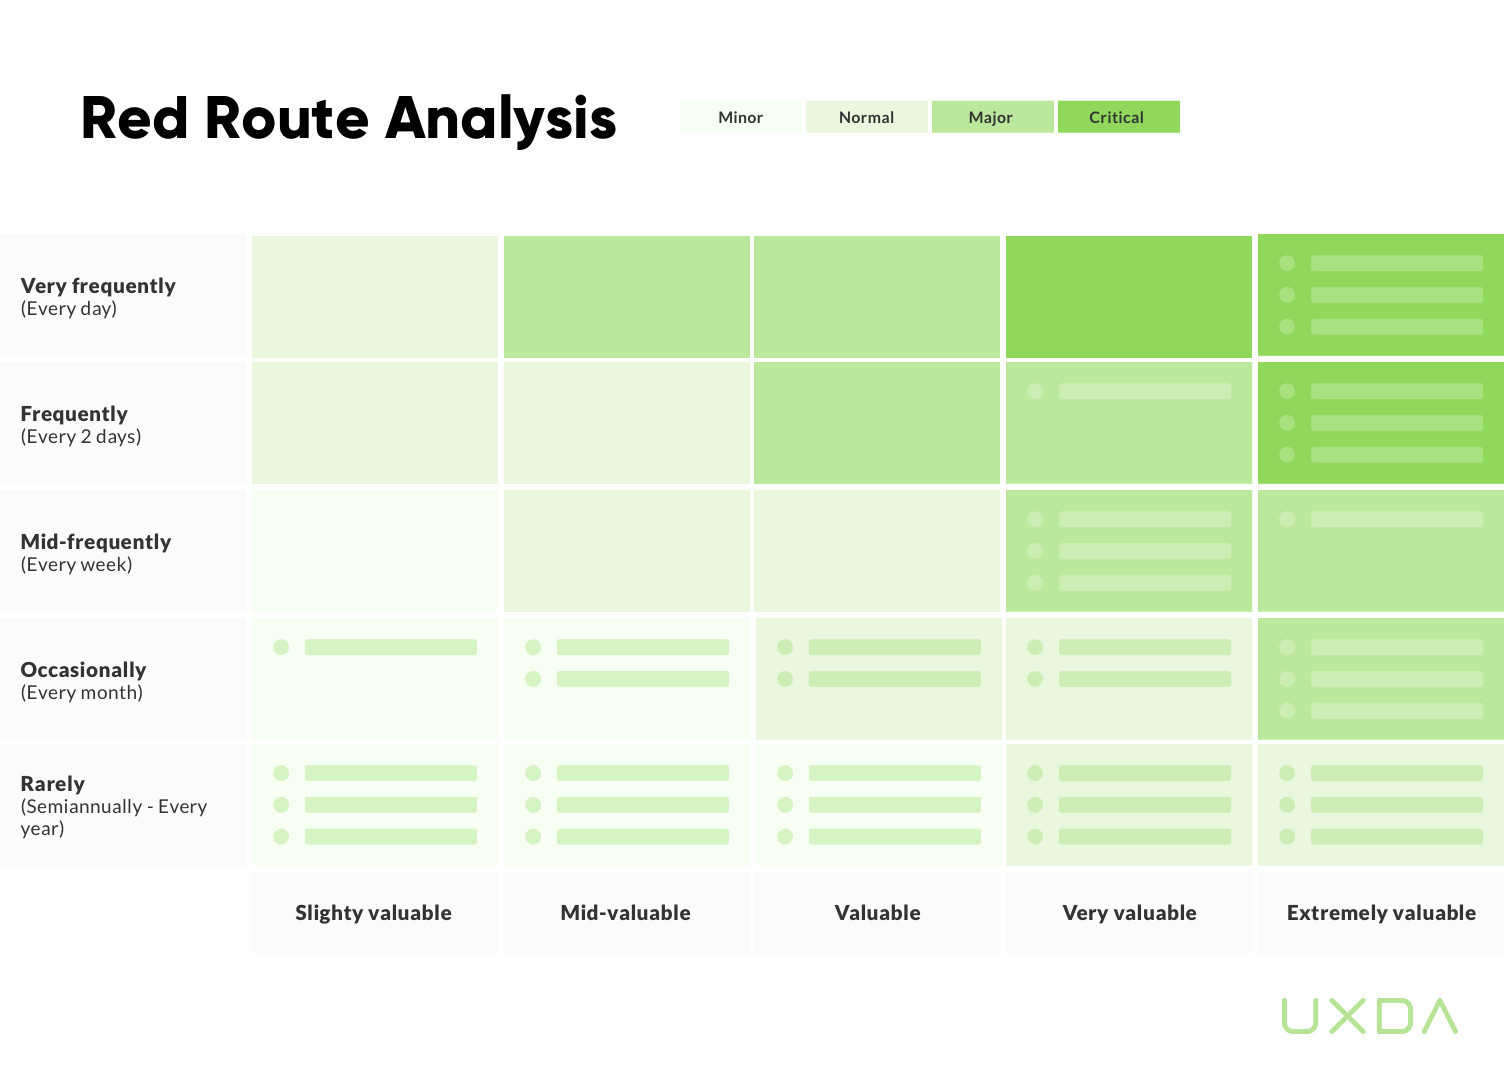 ux-design-banking-red-route-analysis-uxda-work-process__1504.jpg